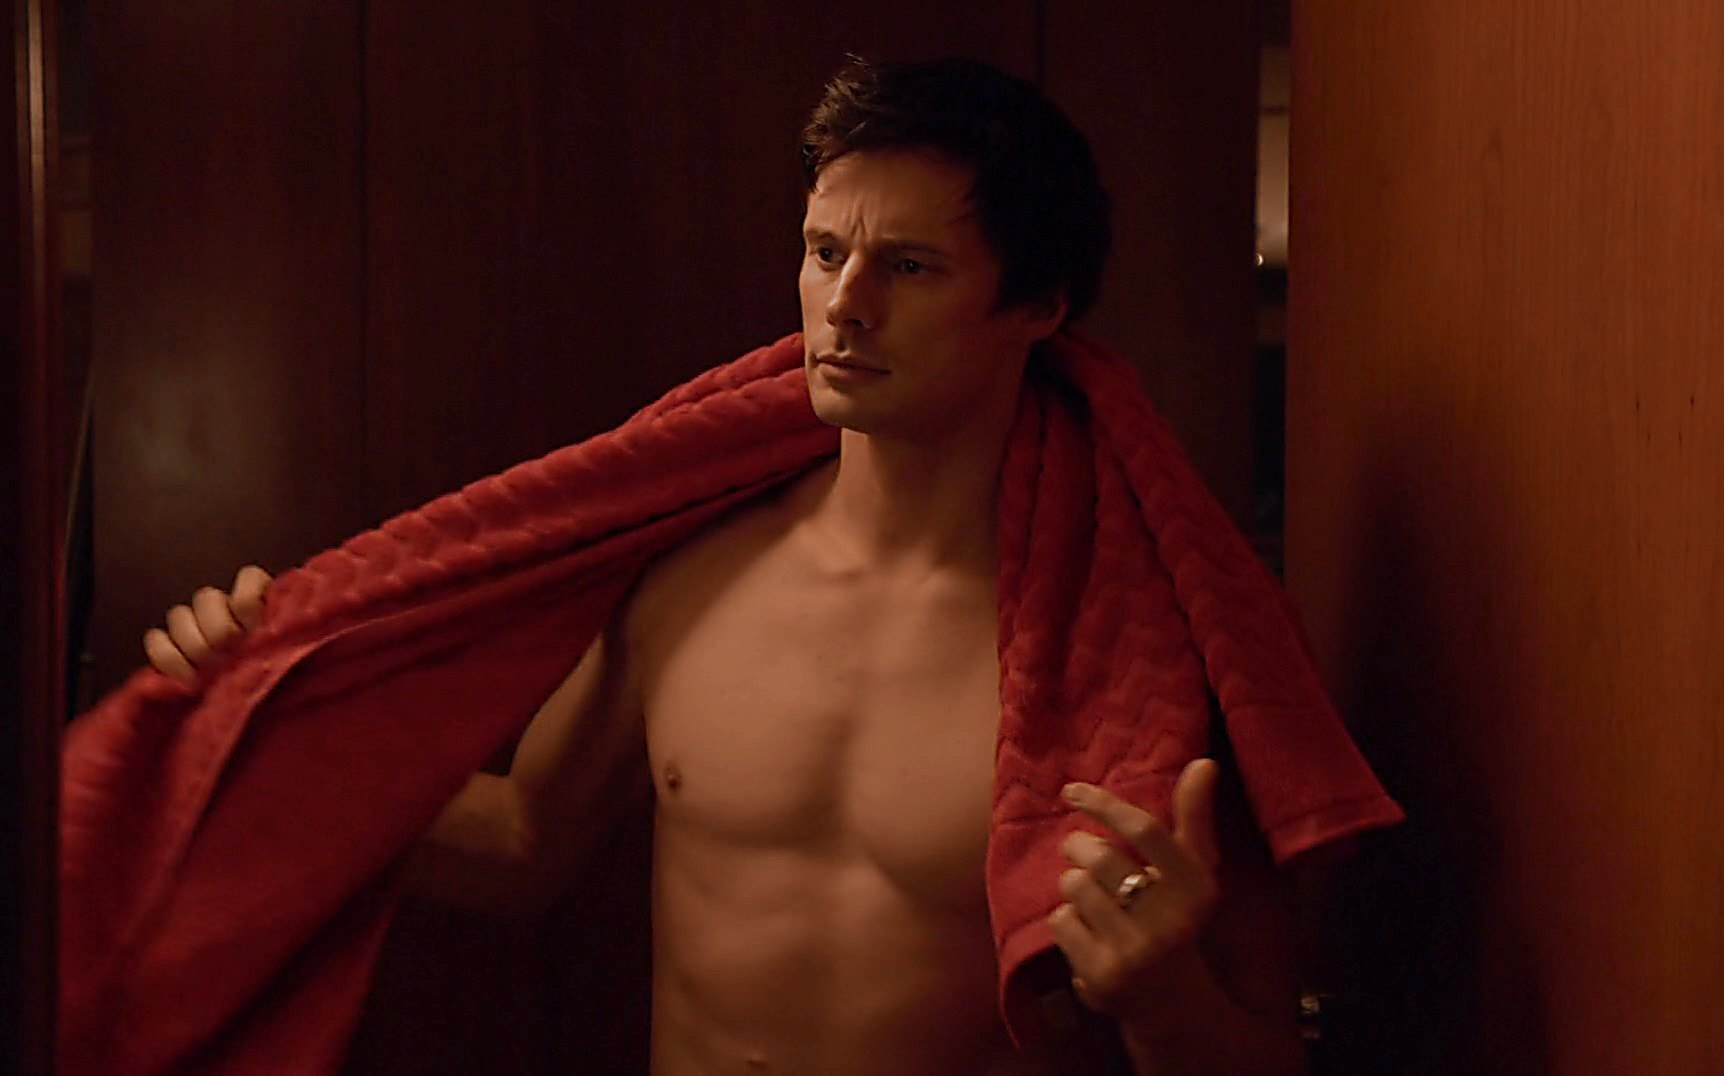 Bradley James sexy shirtless scene July 18, 2015, 1pm